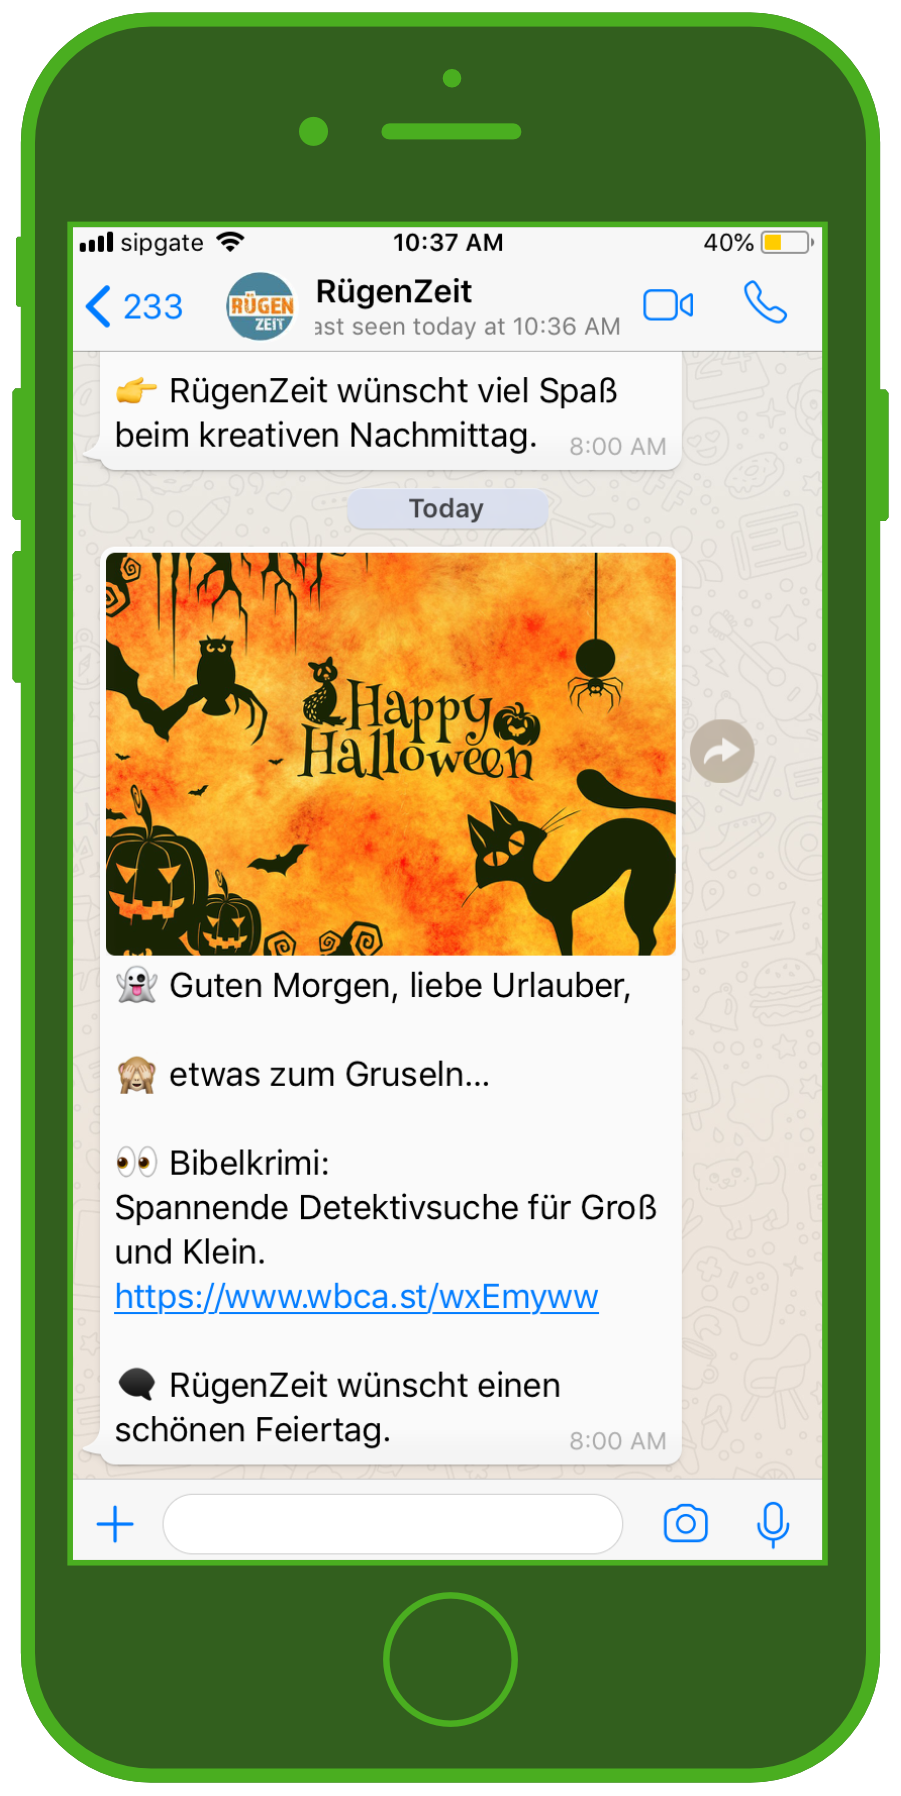 device-WhatsApp-Rügenzeit-Halloween